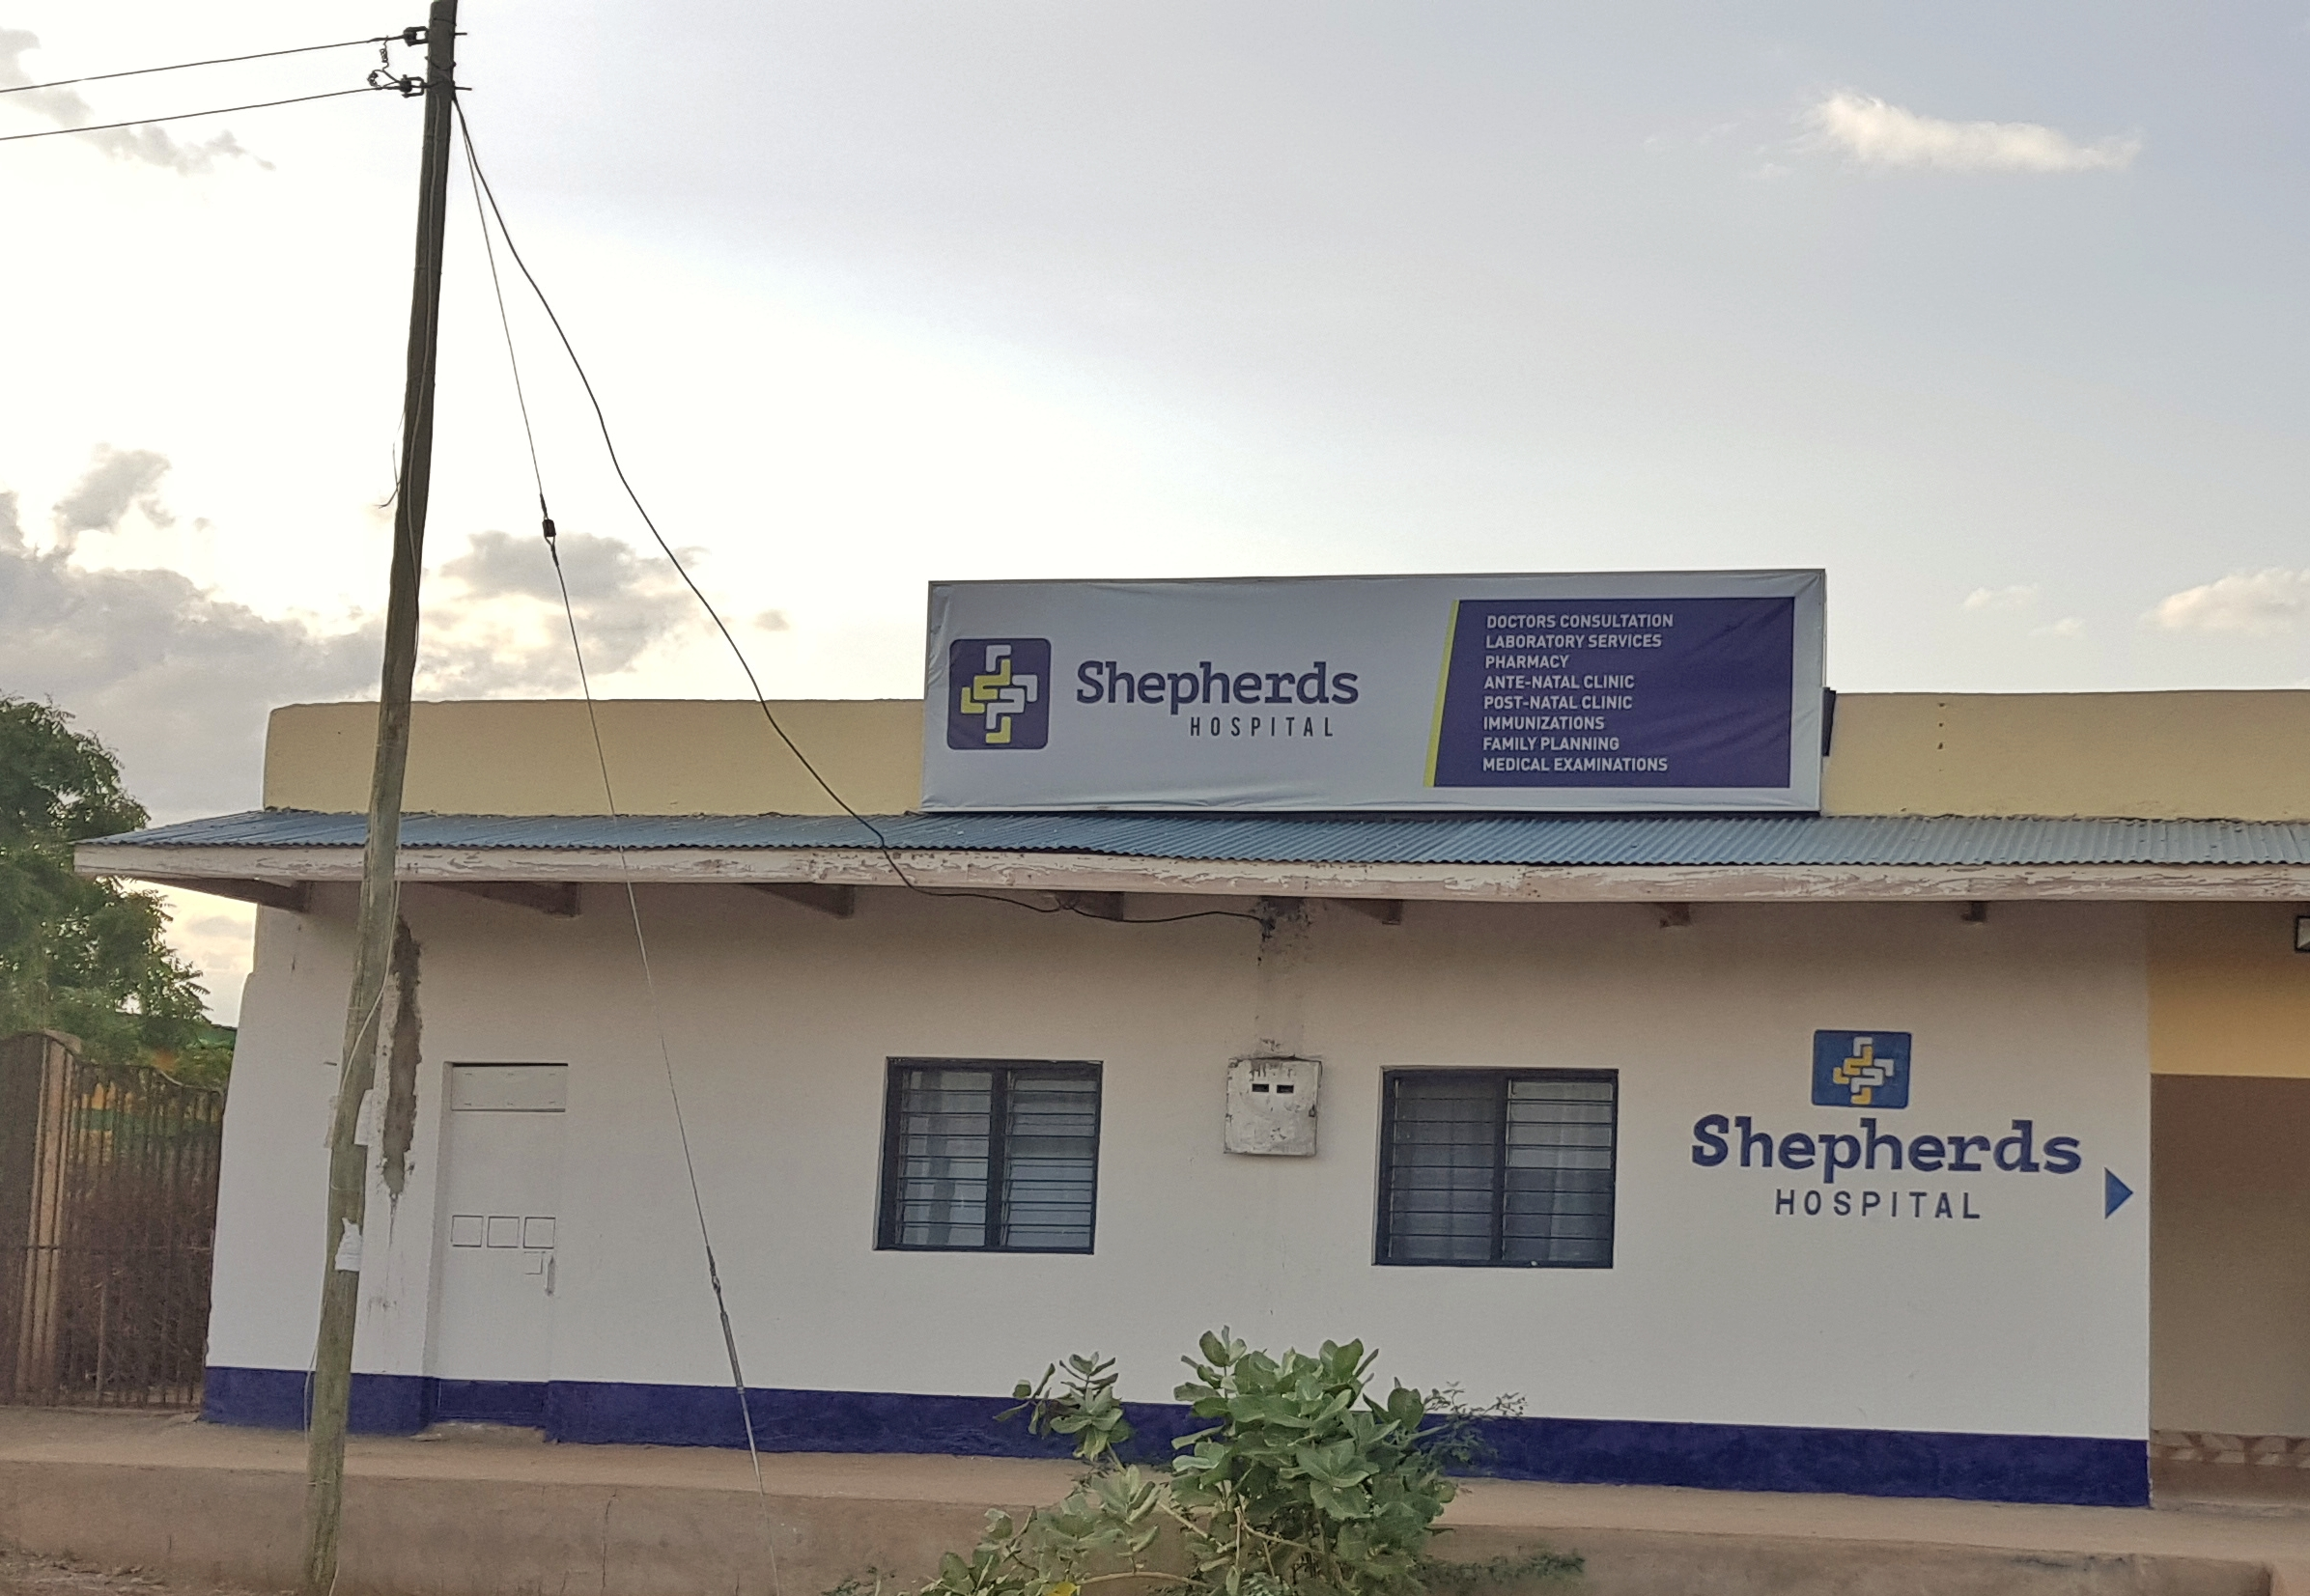 Shepherds Hospital (Kakuma Medical Center)